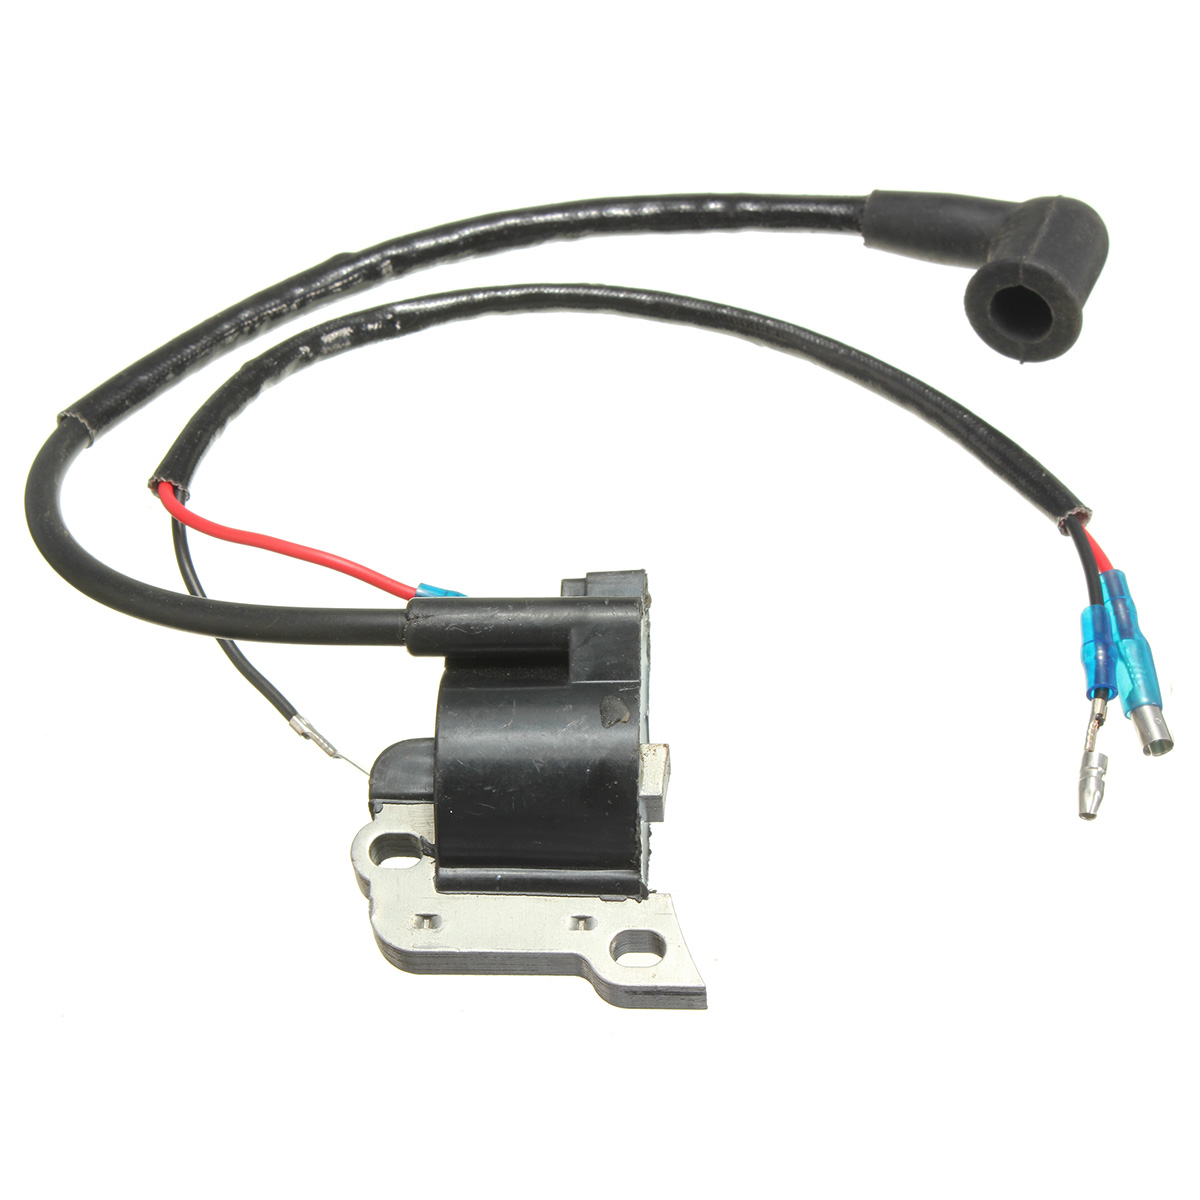 New Ignition Coil Suitable For 4-Stroke Engine Strimmer Brush Cutter Brushcutter